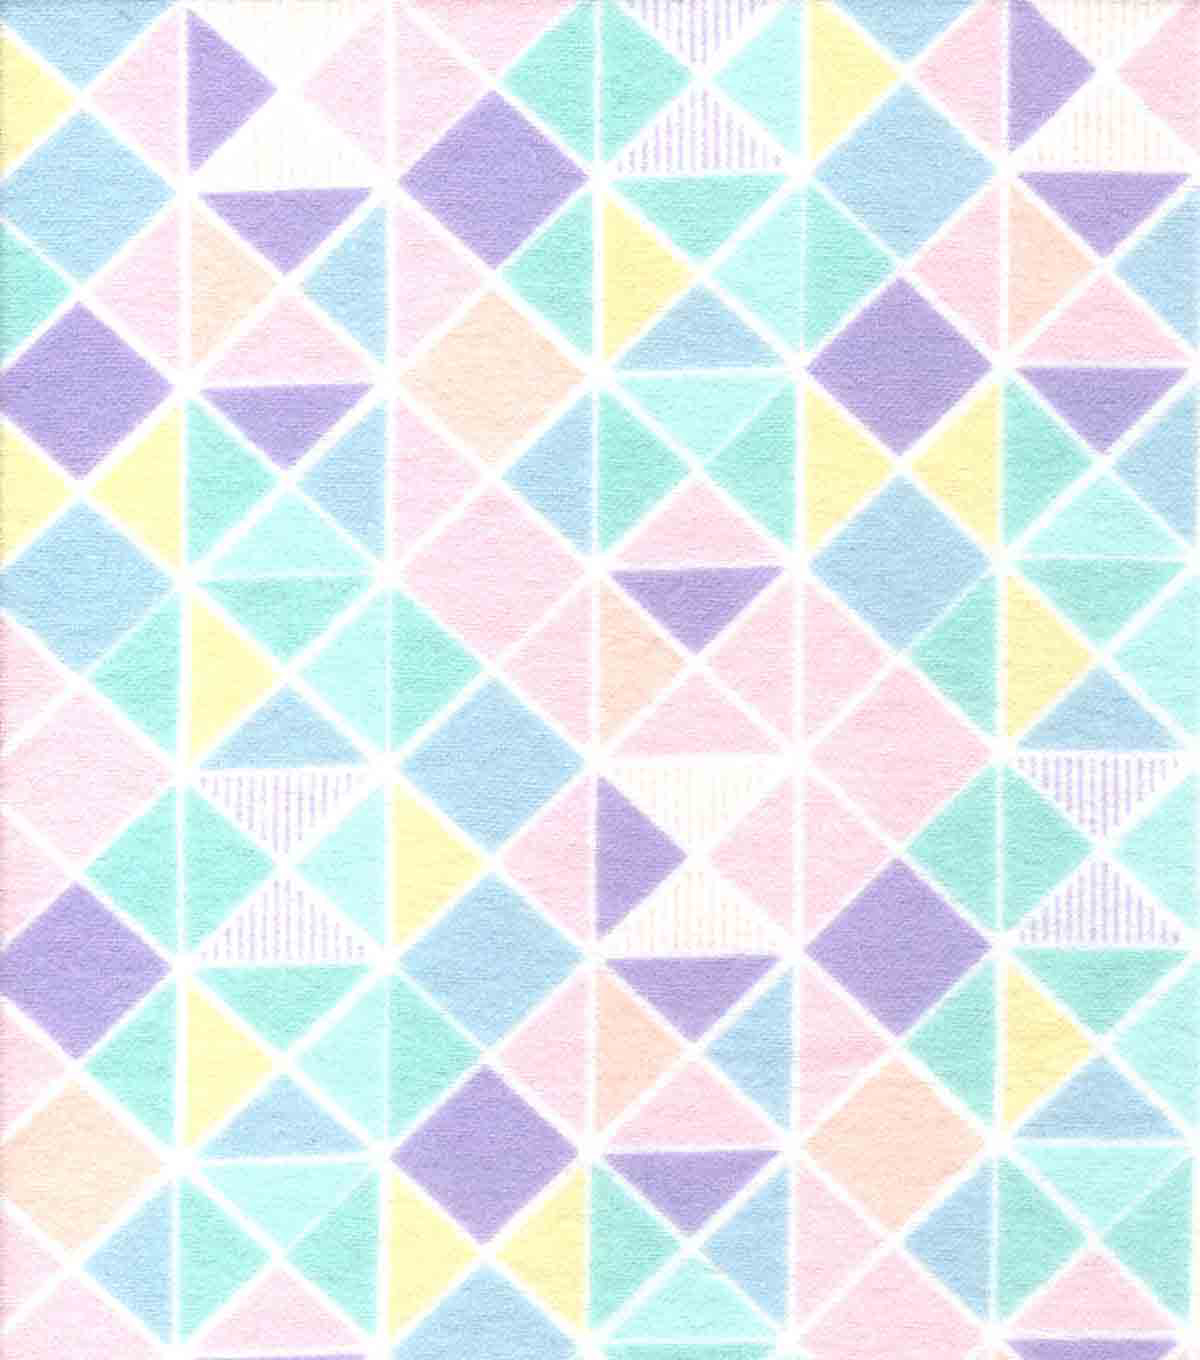 Snuggle Flannel Fabric -Pastel Geometric